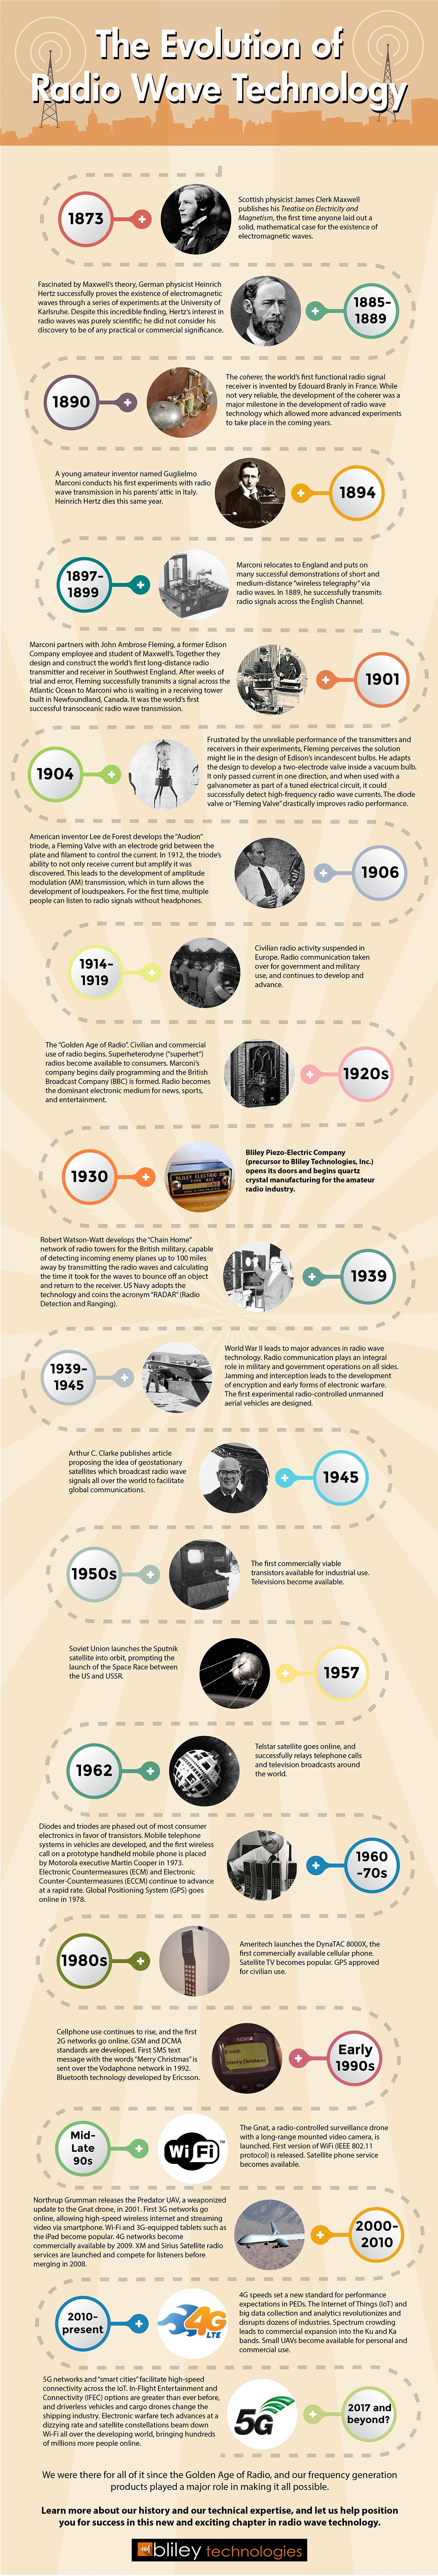 The Evolution & History of Radio Wave Technology [Infographic]